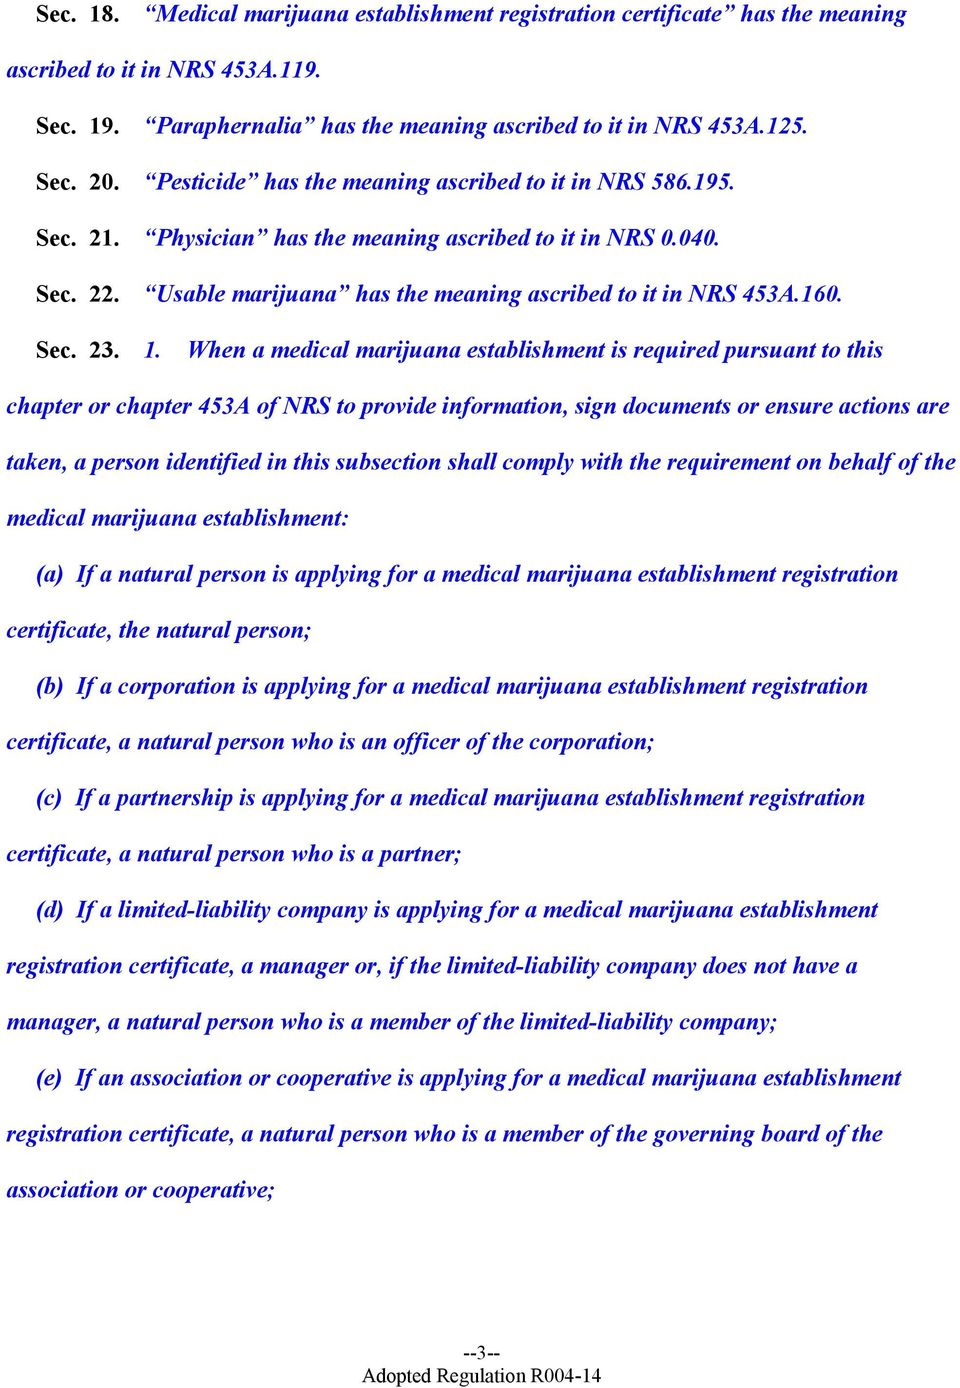 1. When a medical marijuana establishment is required pursuant to this chapter or chapter 453A of NRS to provide information, sign documents or ensure actions are taken, a person identified in this